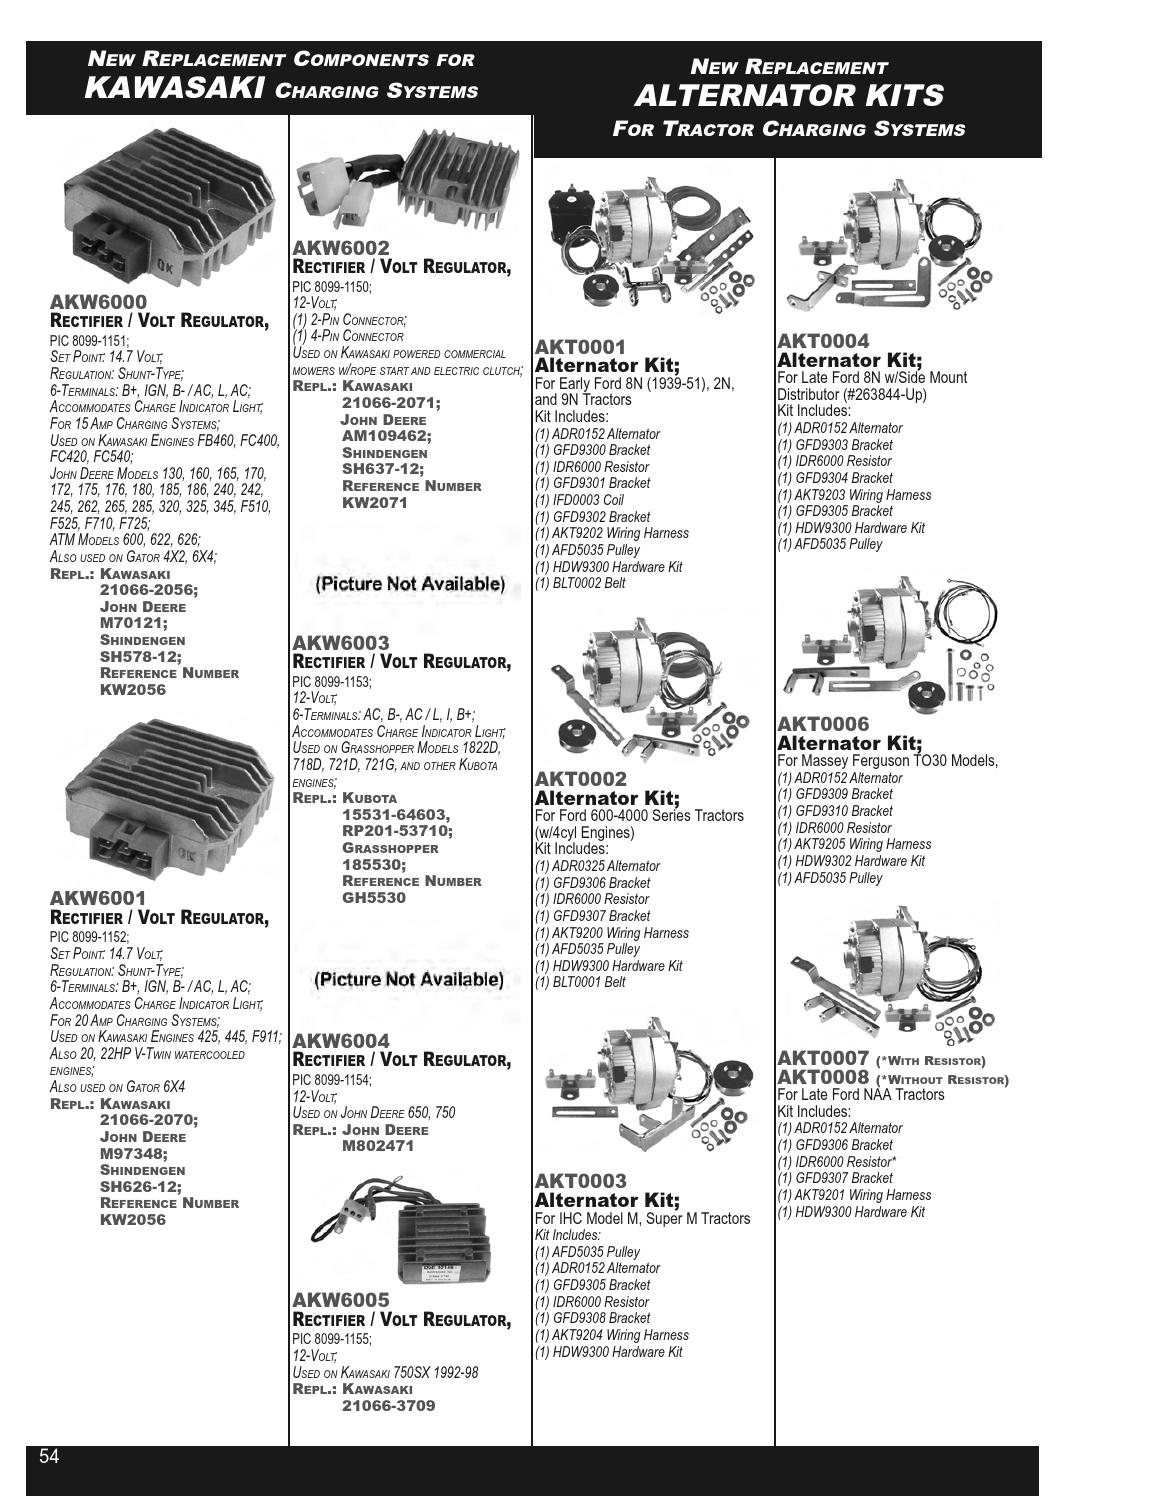 hight resolution of arrowhead electrical products master components catalog by arrowhead electrical products issuu